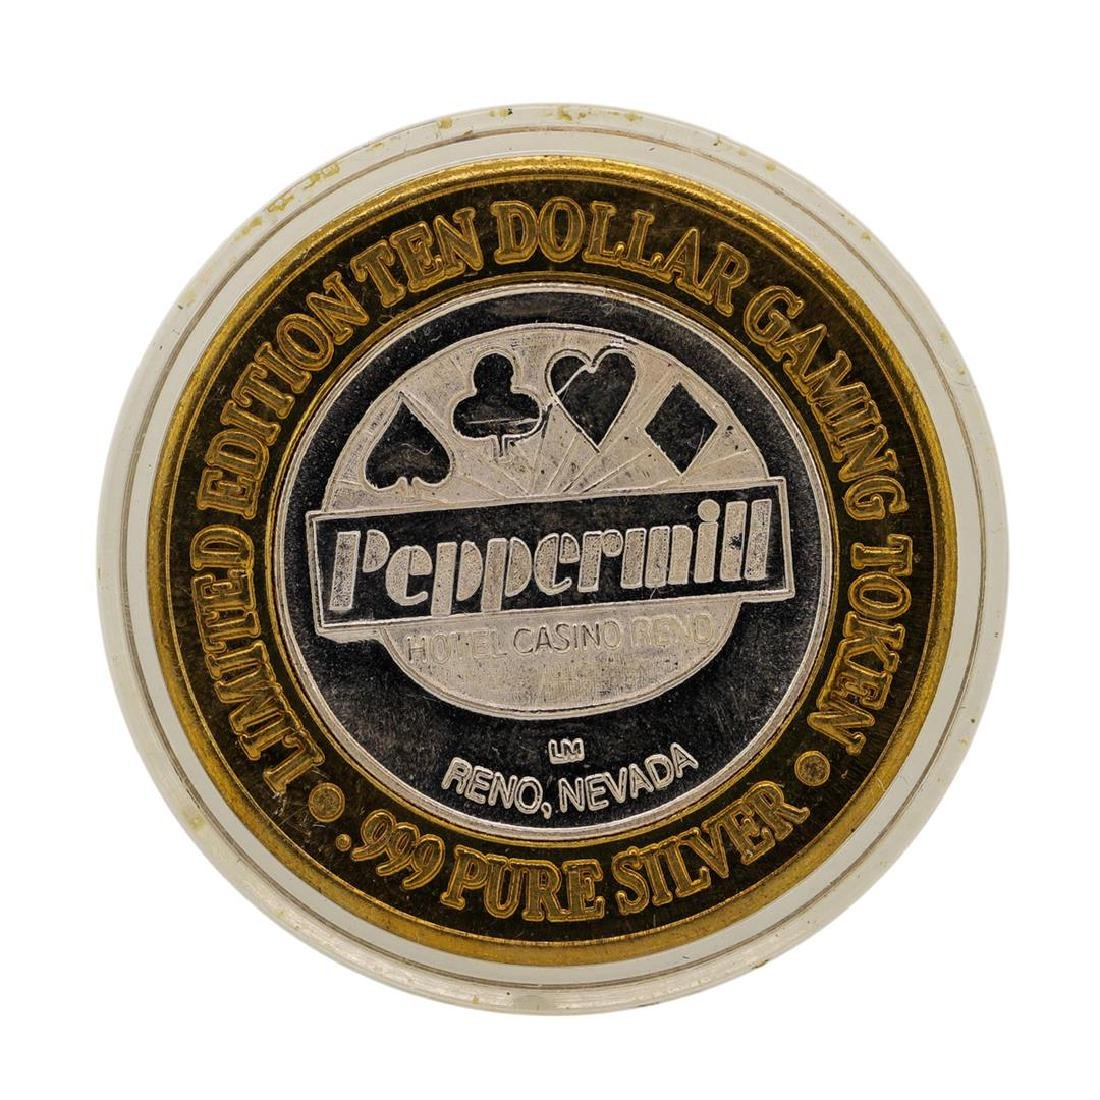 .999 Silver Peppermill Hotel Casino Reno, NV $10 Casino